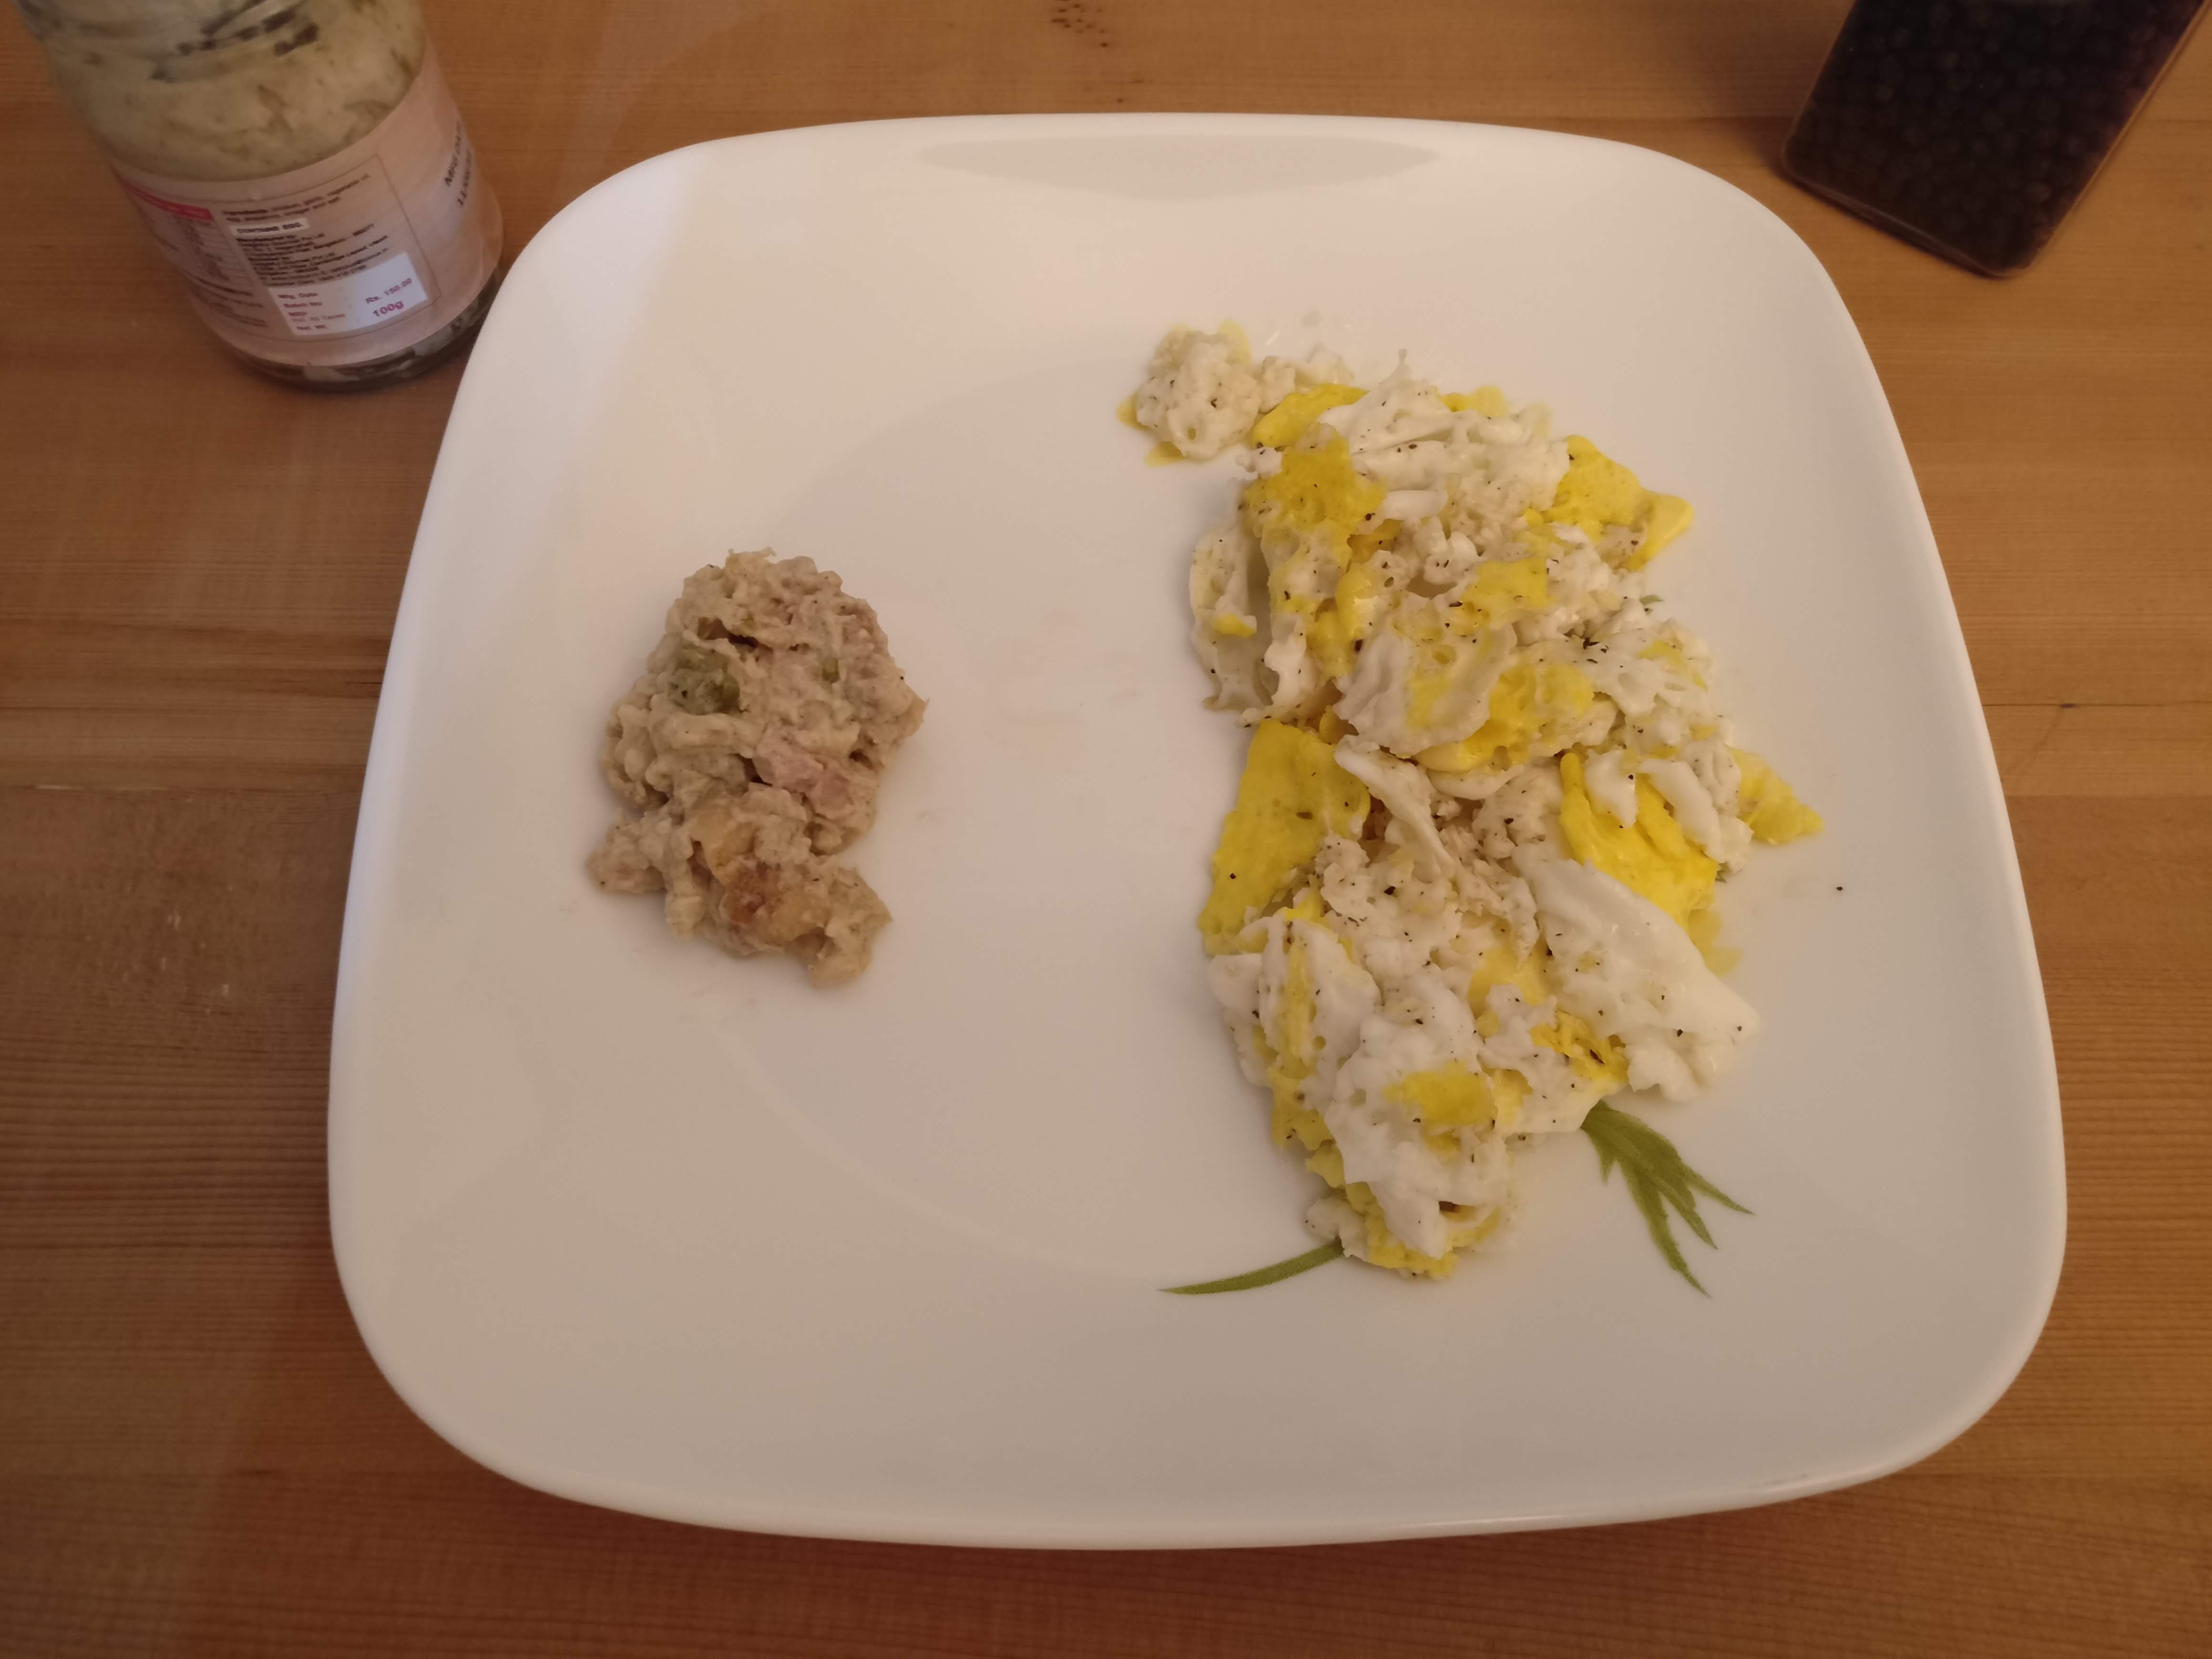 Scrambled Eggs and Chunky Chicken Spread in Garlic Mayonnaise